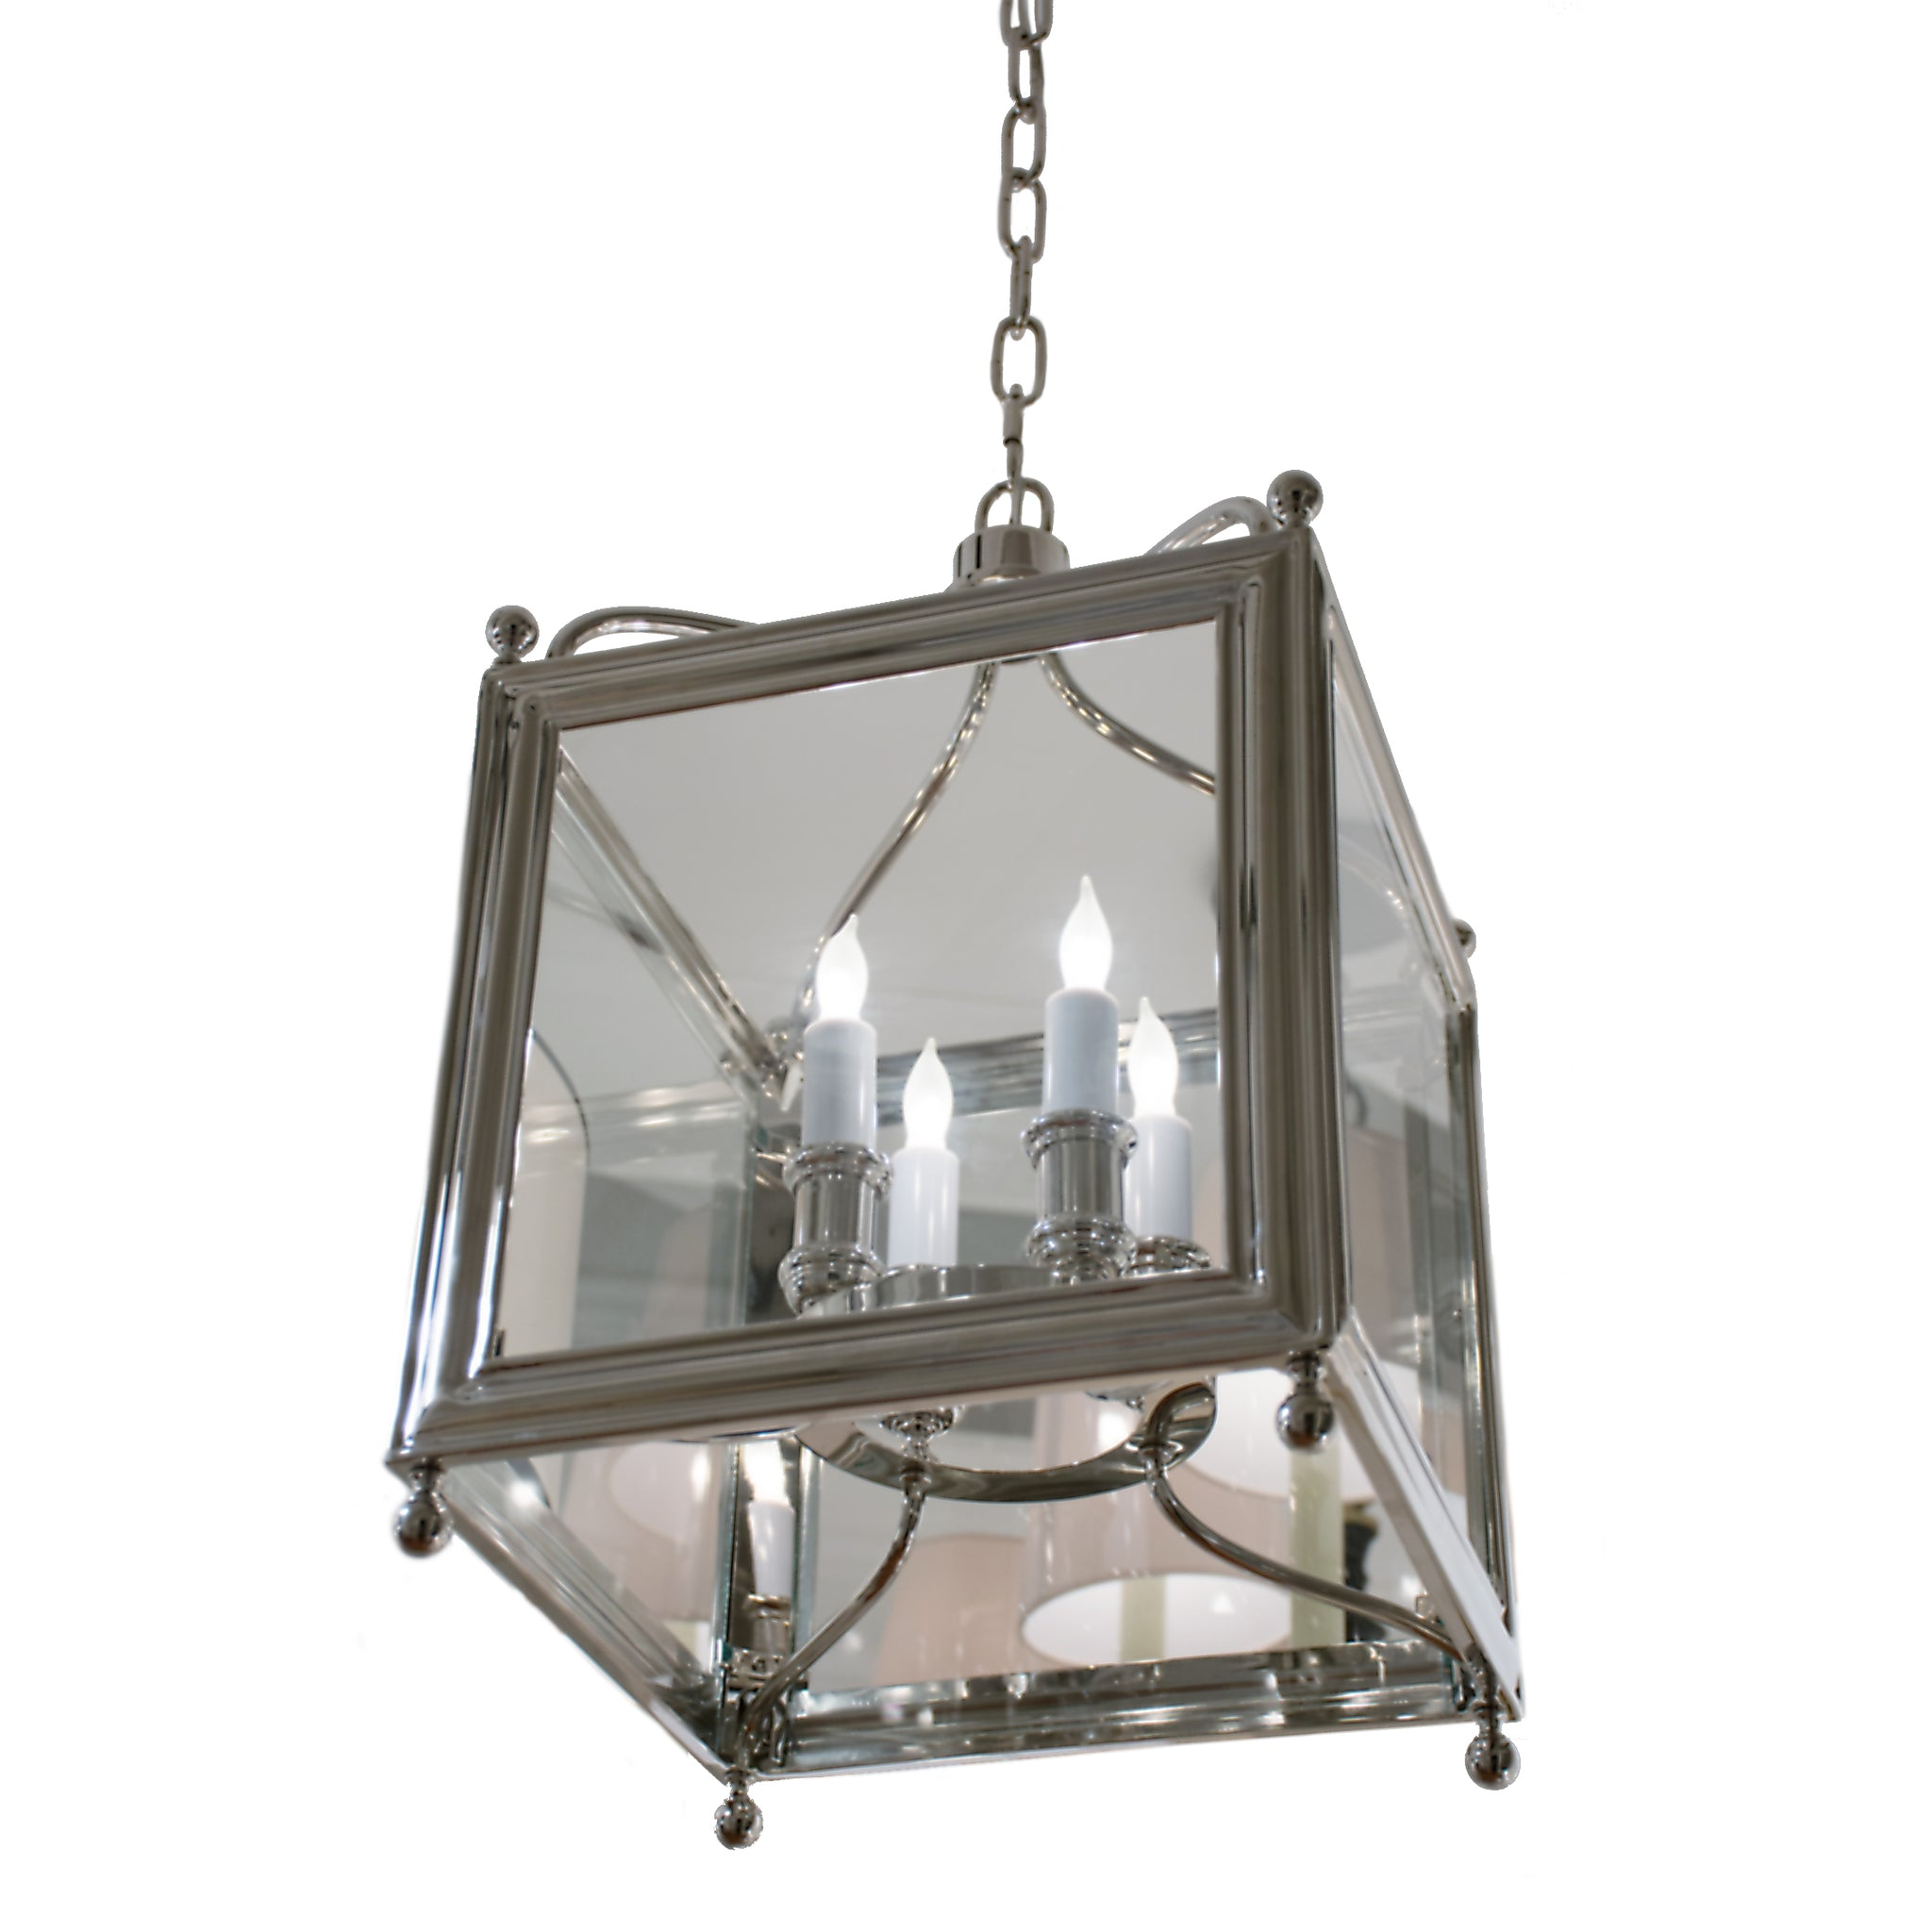 Greggory Small Lantern in Polished Nickel